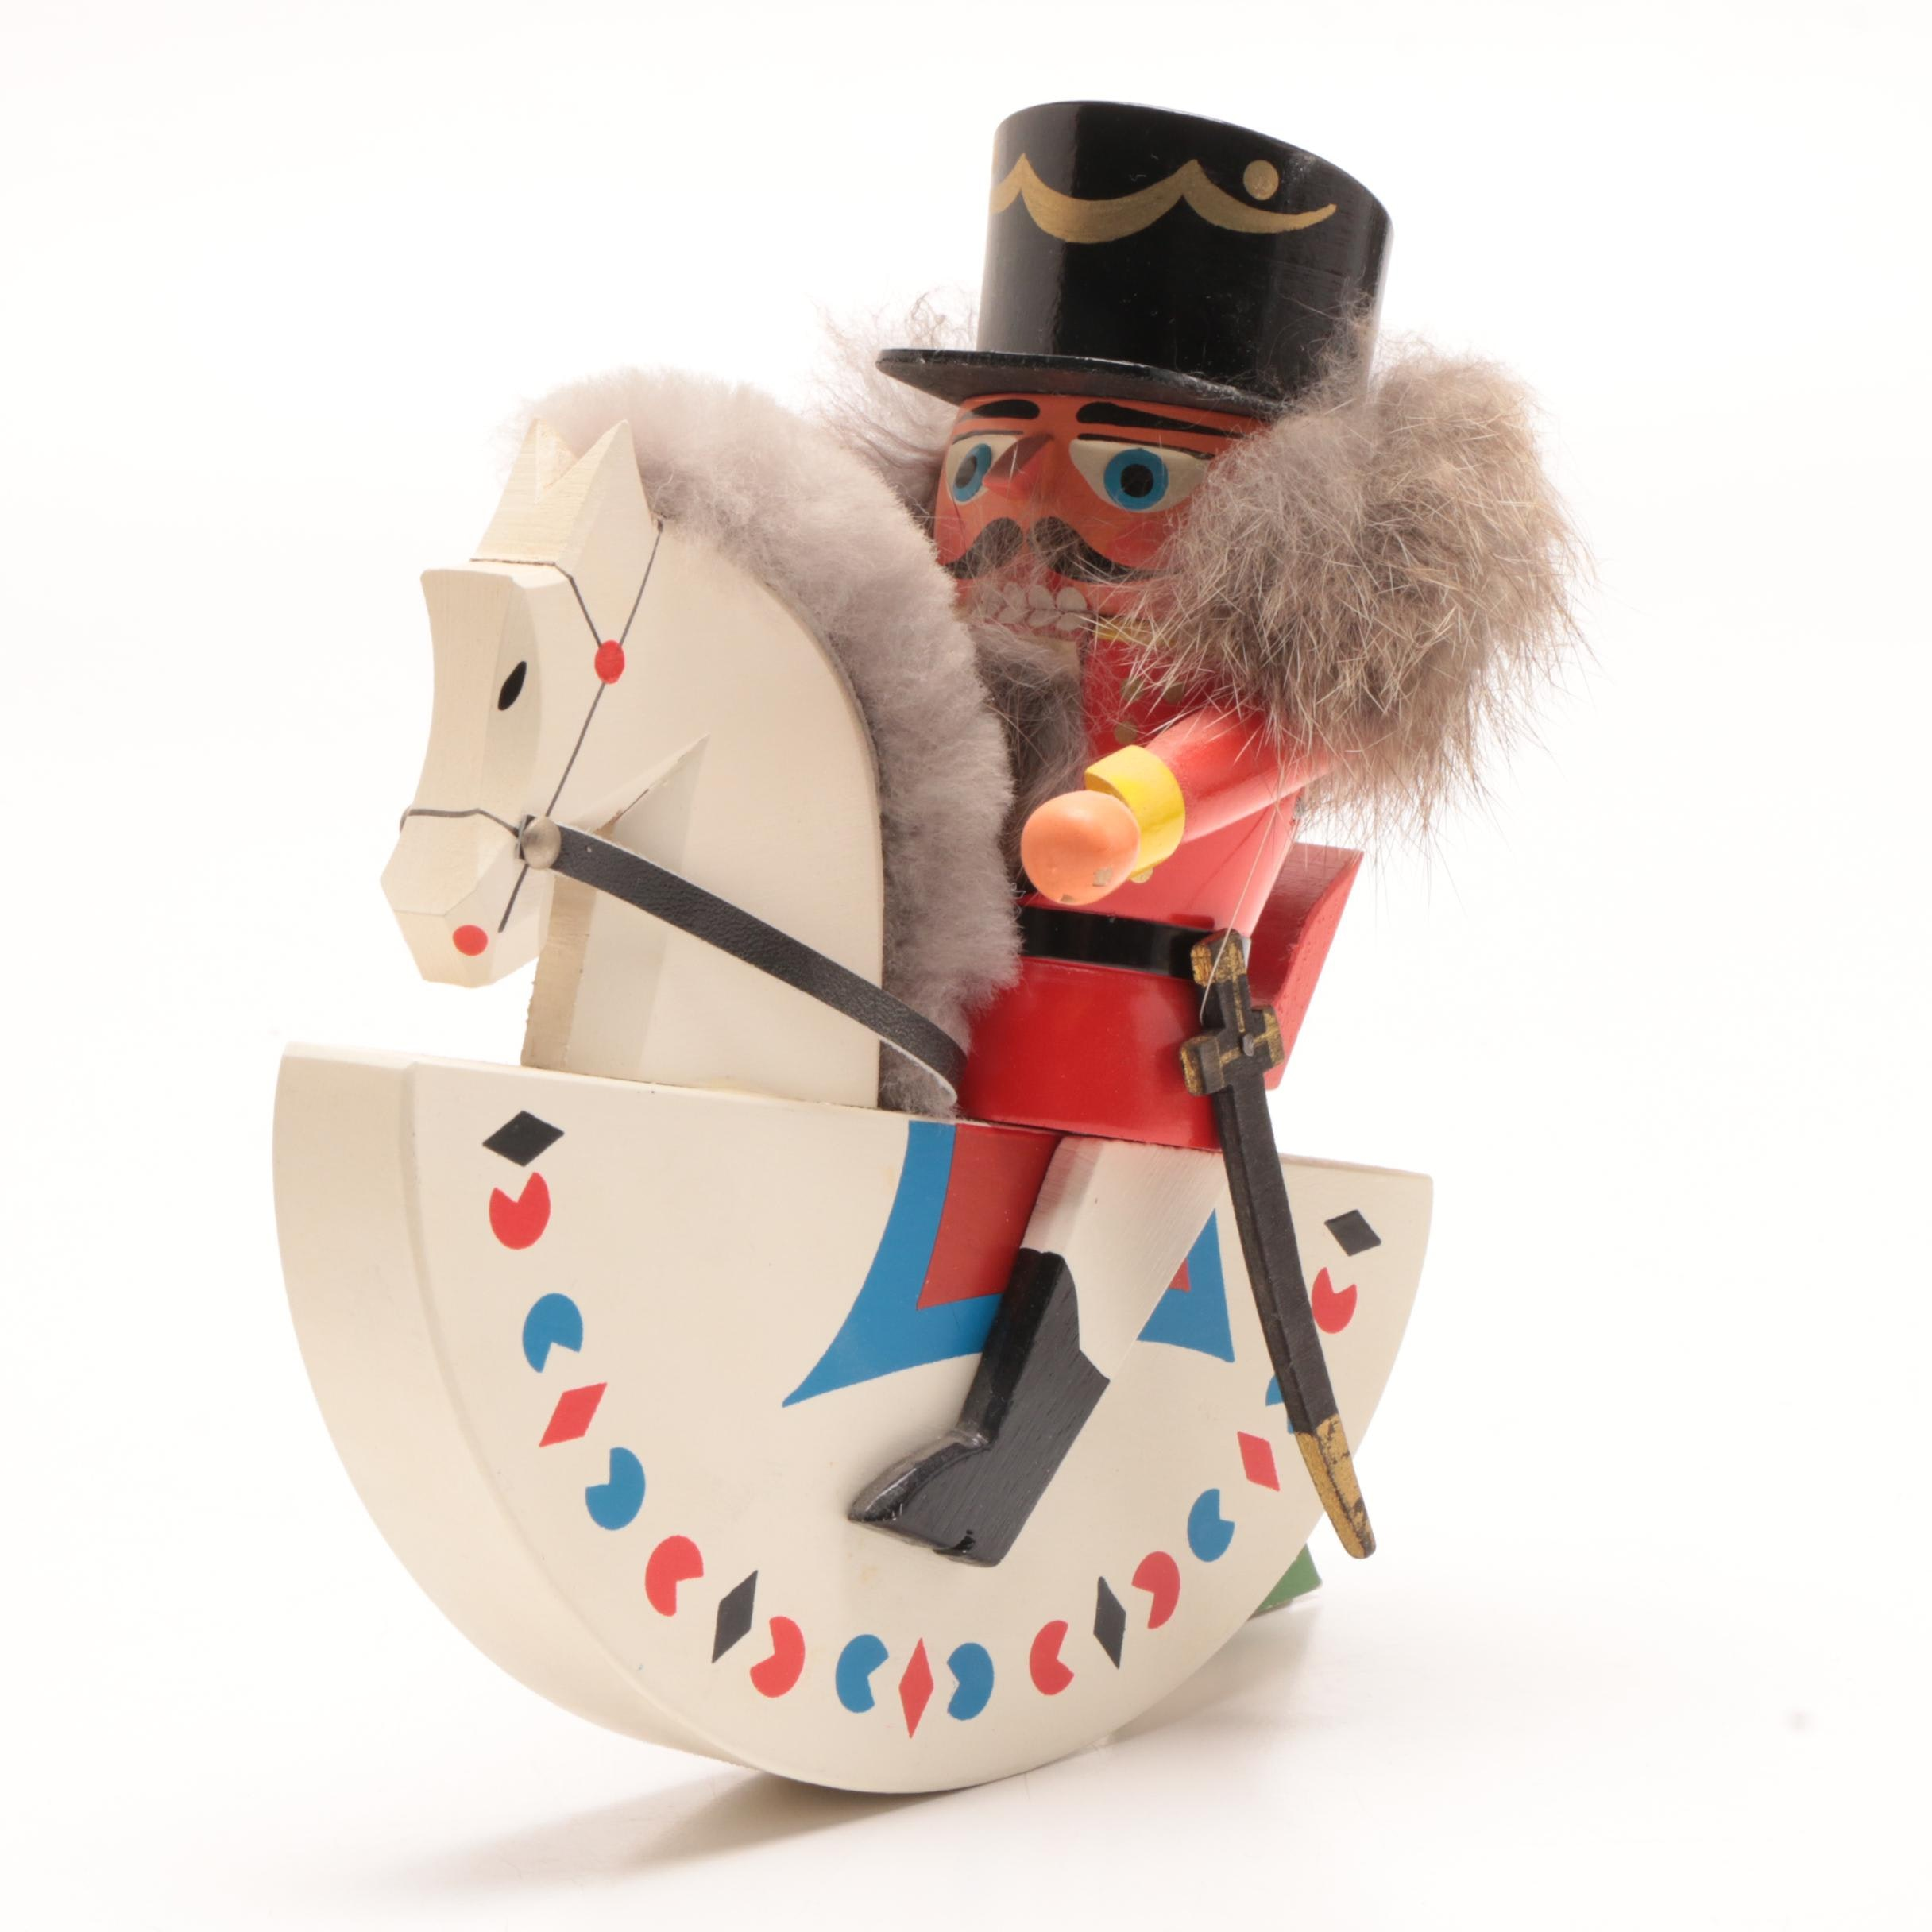 Erzgebirgische Volkskunst Carved German Nutcracker